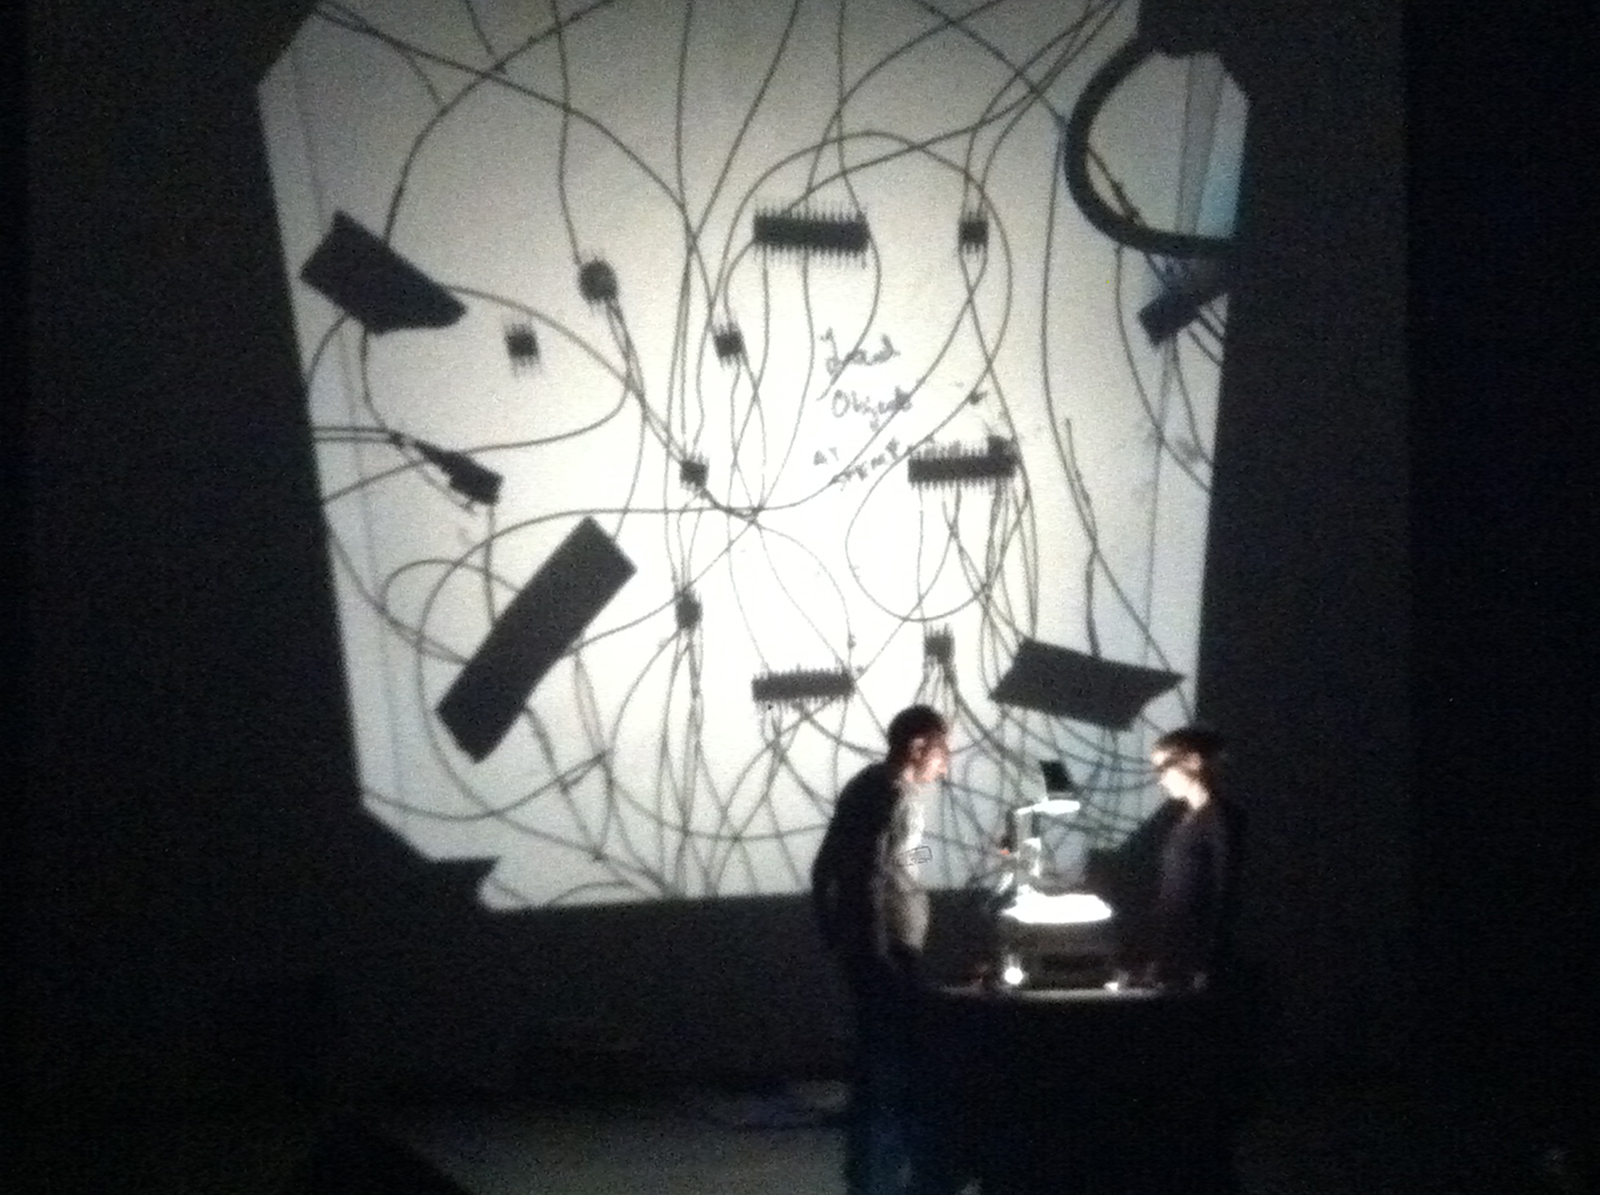 Mixing Sounds and Silence at the SF Electronic Music Festival